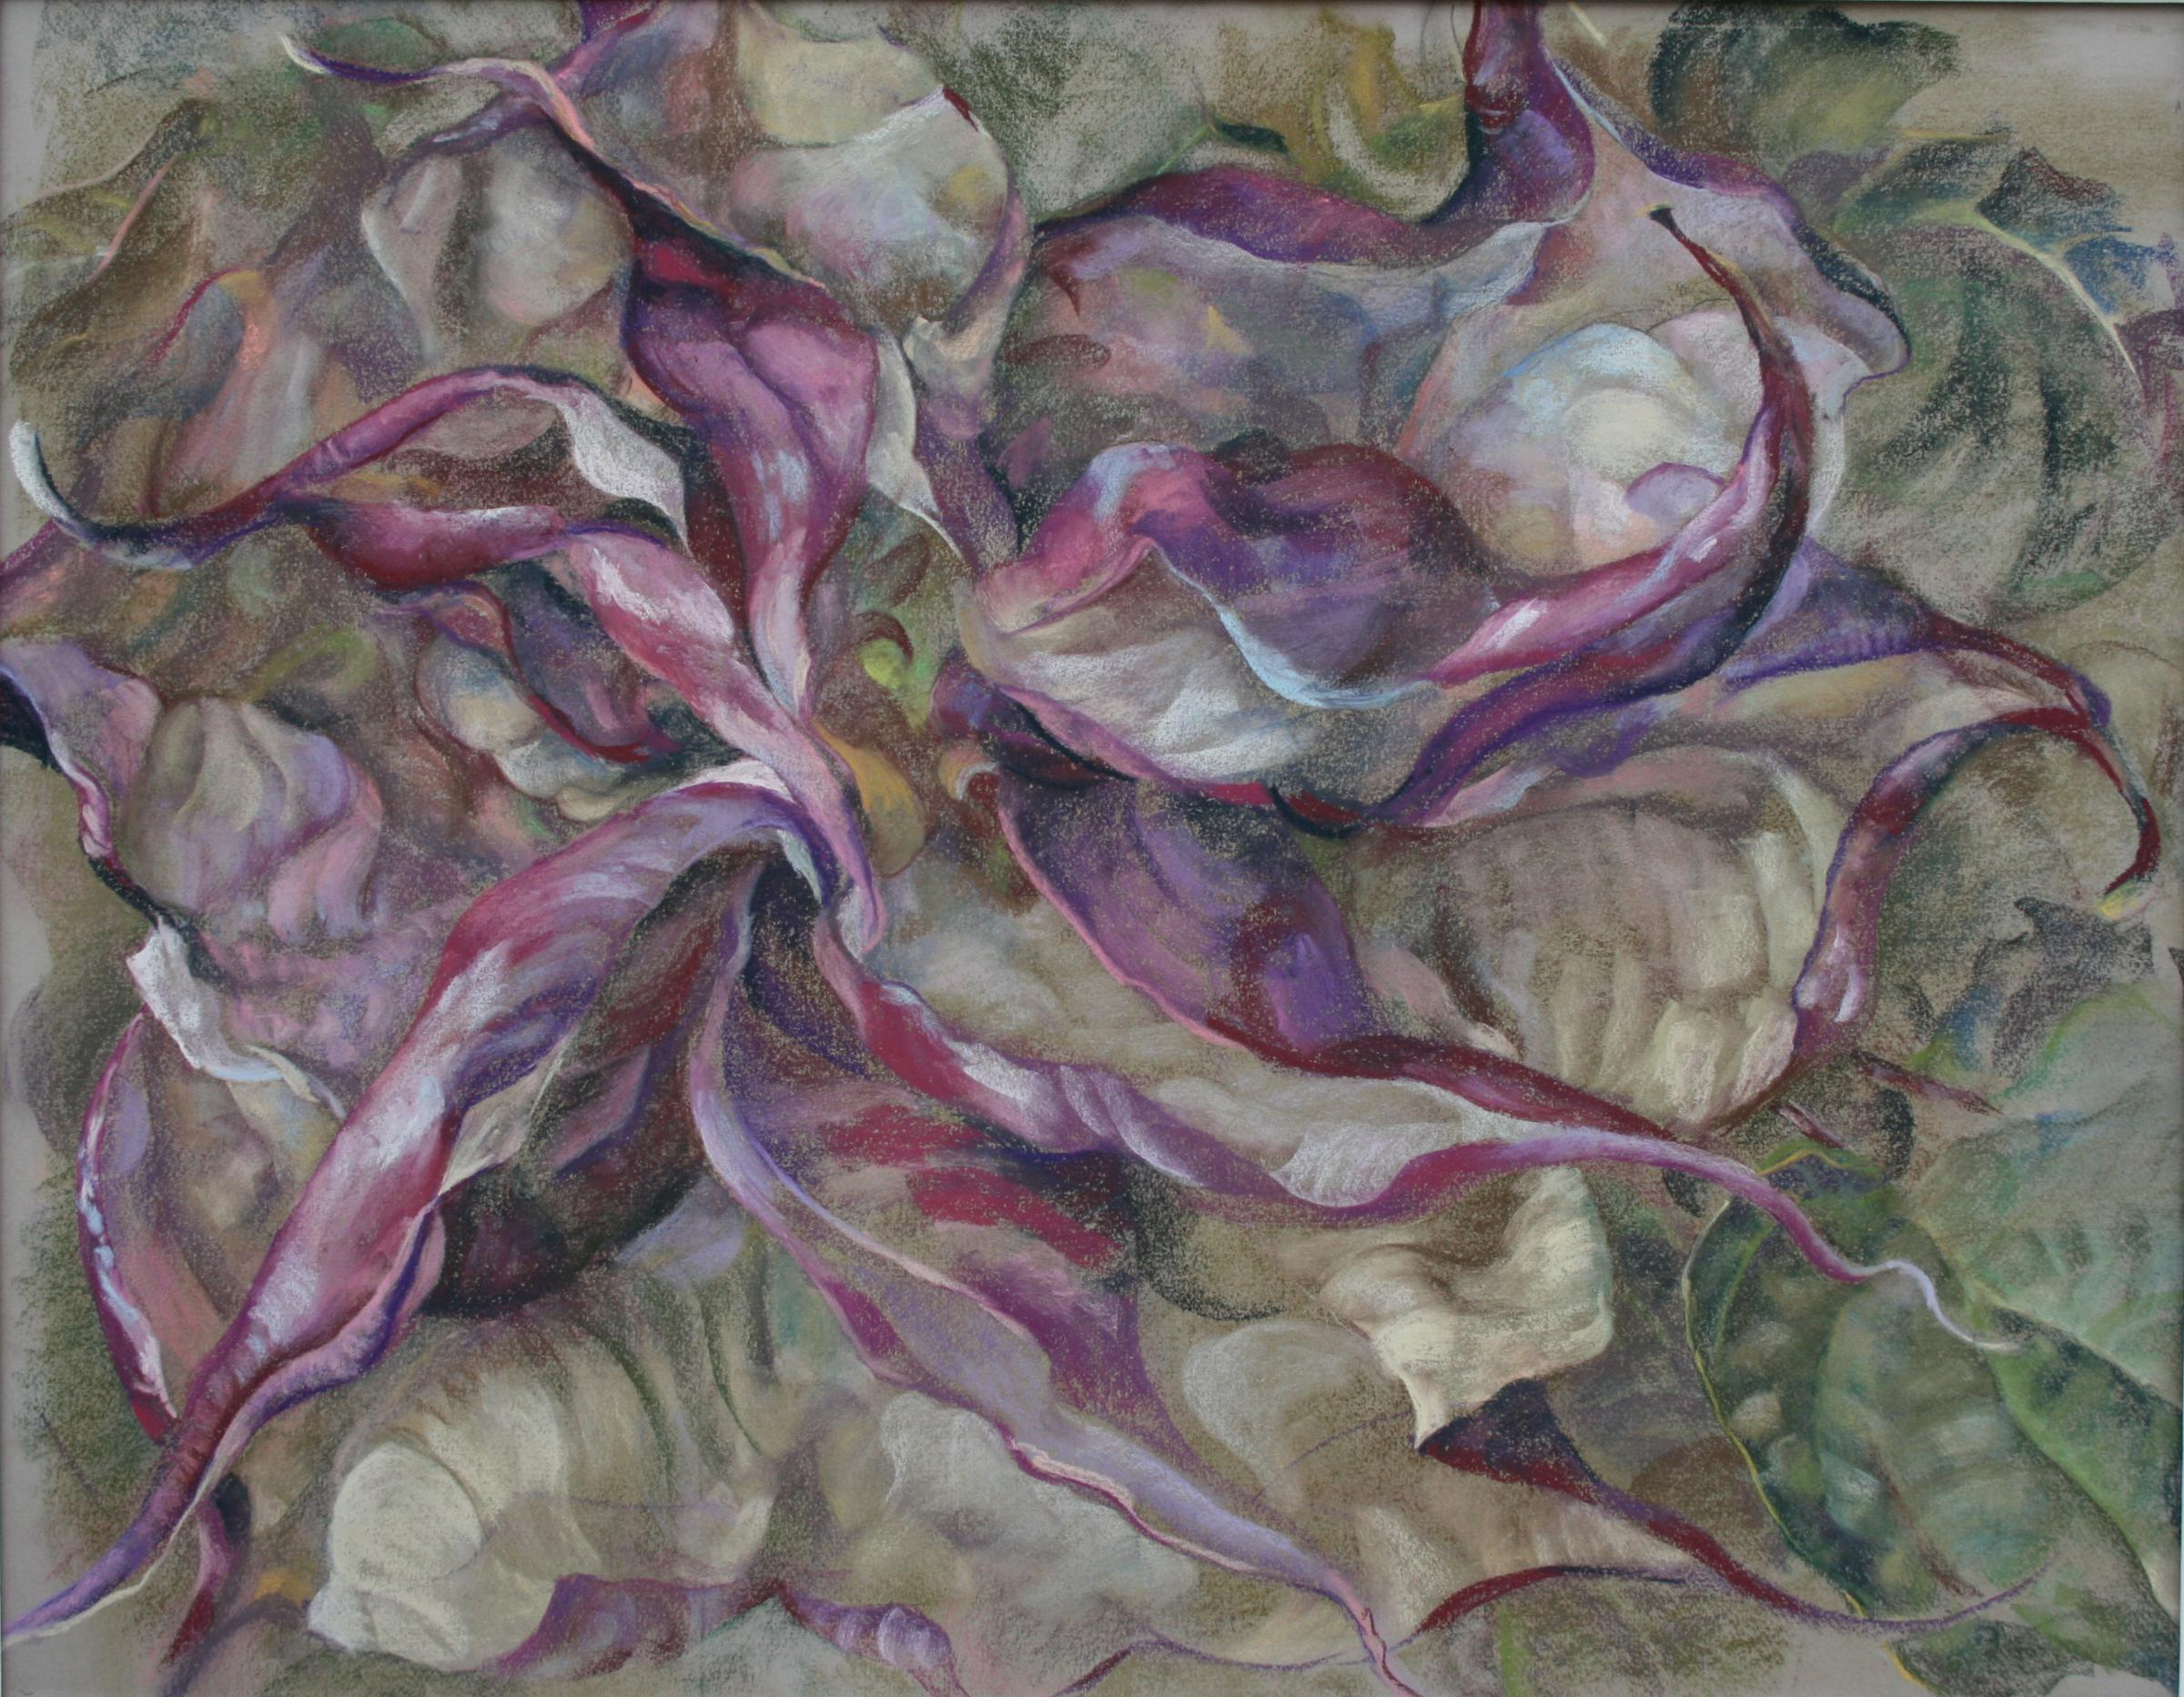 'Traveller's Poise': A solo exhibition of pastel and oil paintings by Helen Simpson